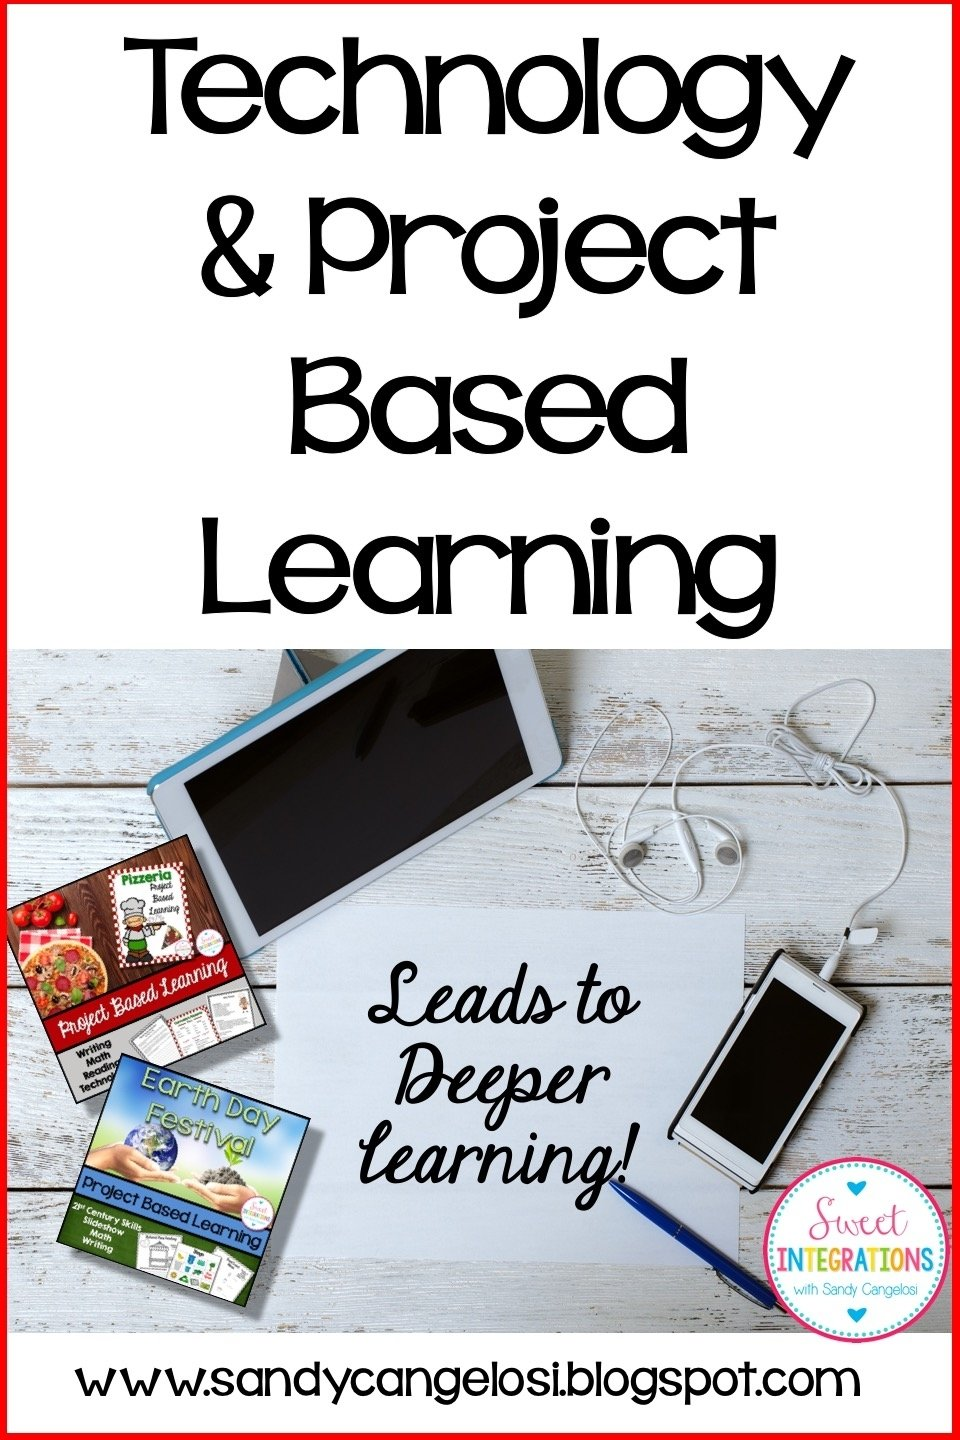 10 Trendy Project Based Learning Ideas For Middle School blending technology and project based learning sweet integrations 2020